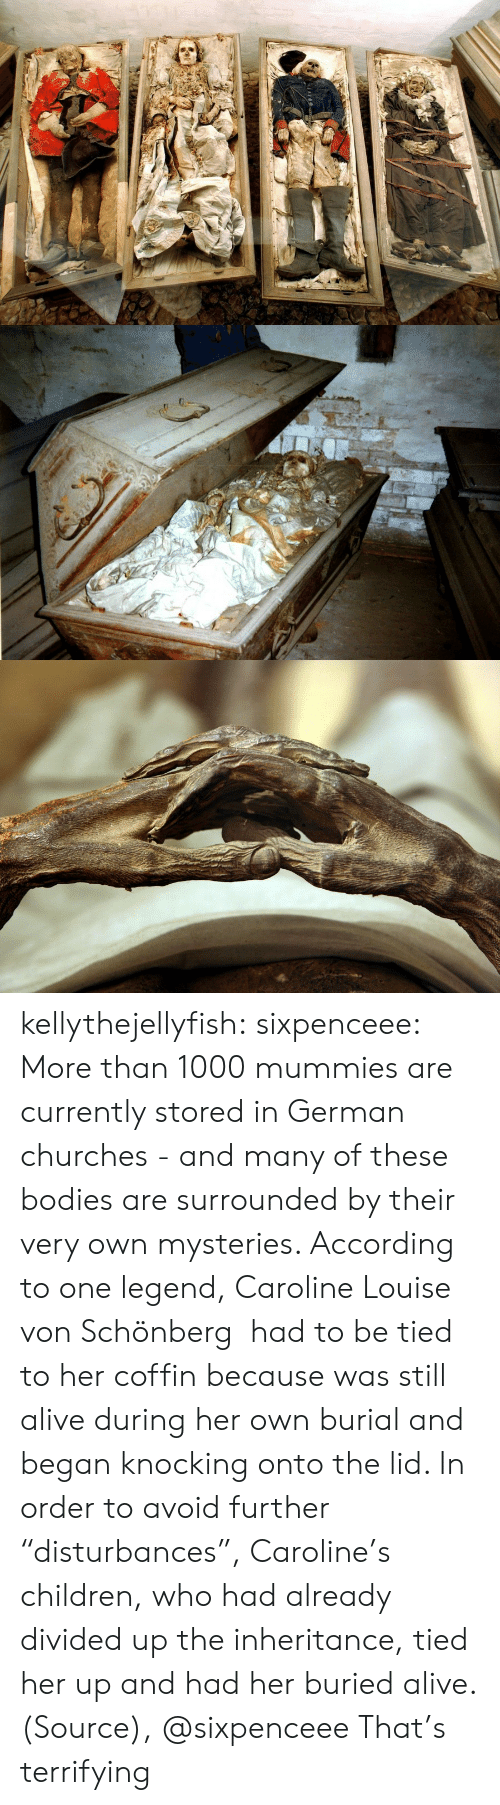 "buried: kellythejellyfish: sixpenceee:  More than 1000 mummies are currently stored in German churches - and many of these bodies are surrounded by their very own mysteries. According to one legend, Caroline Louise von Schönberg  had to be tied to her coffin because was still alive during her own burial and began knocking onto the lid. In order to avoid further ""disturbances"", Caroline's children, who had already divided up the inheritance, tied her up and had her buried alive. (Source), @sixpenceee  That's terrifying"